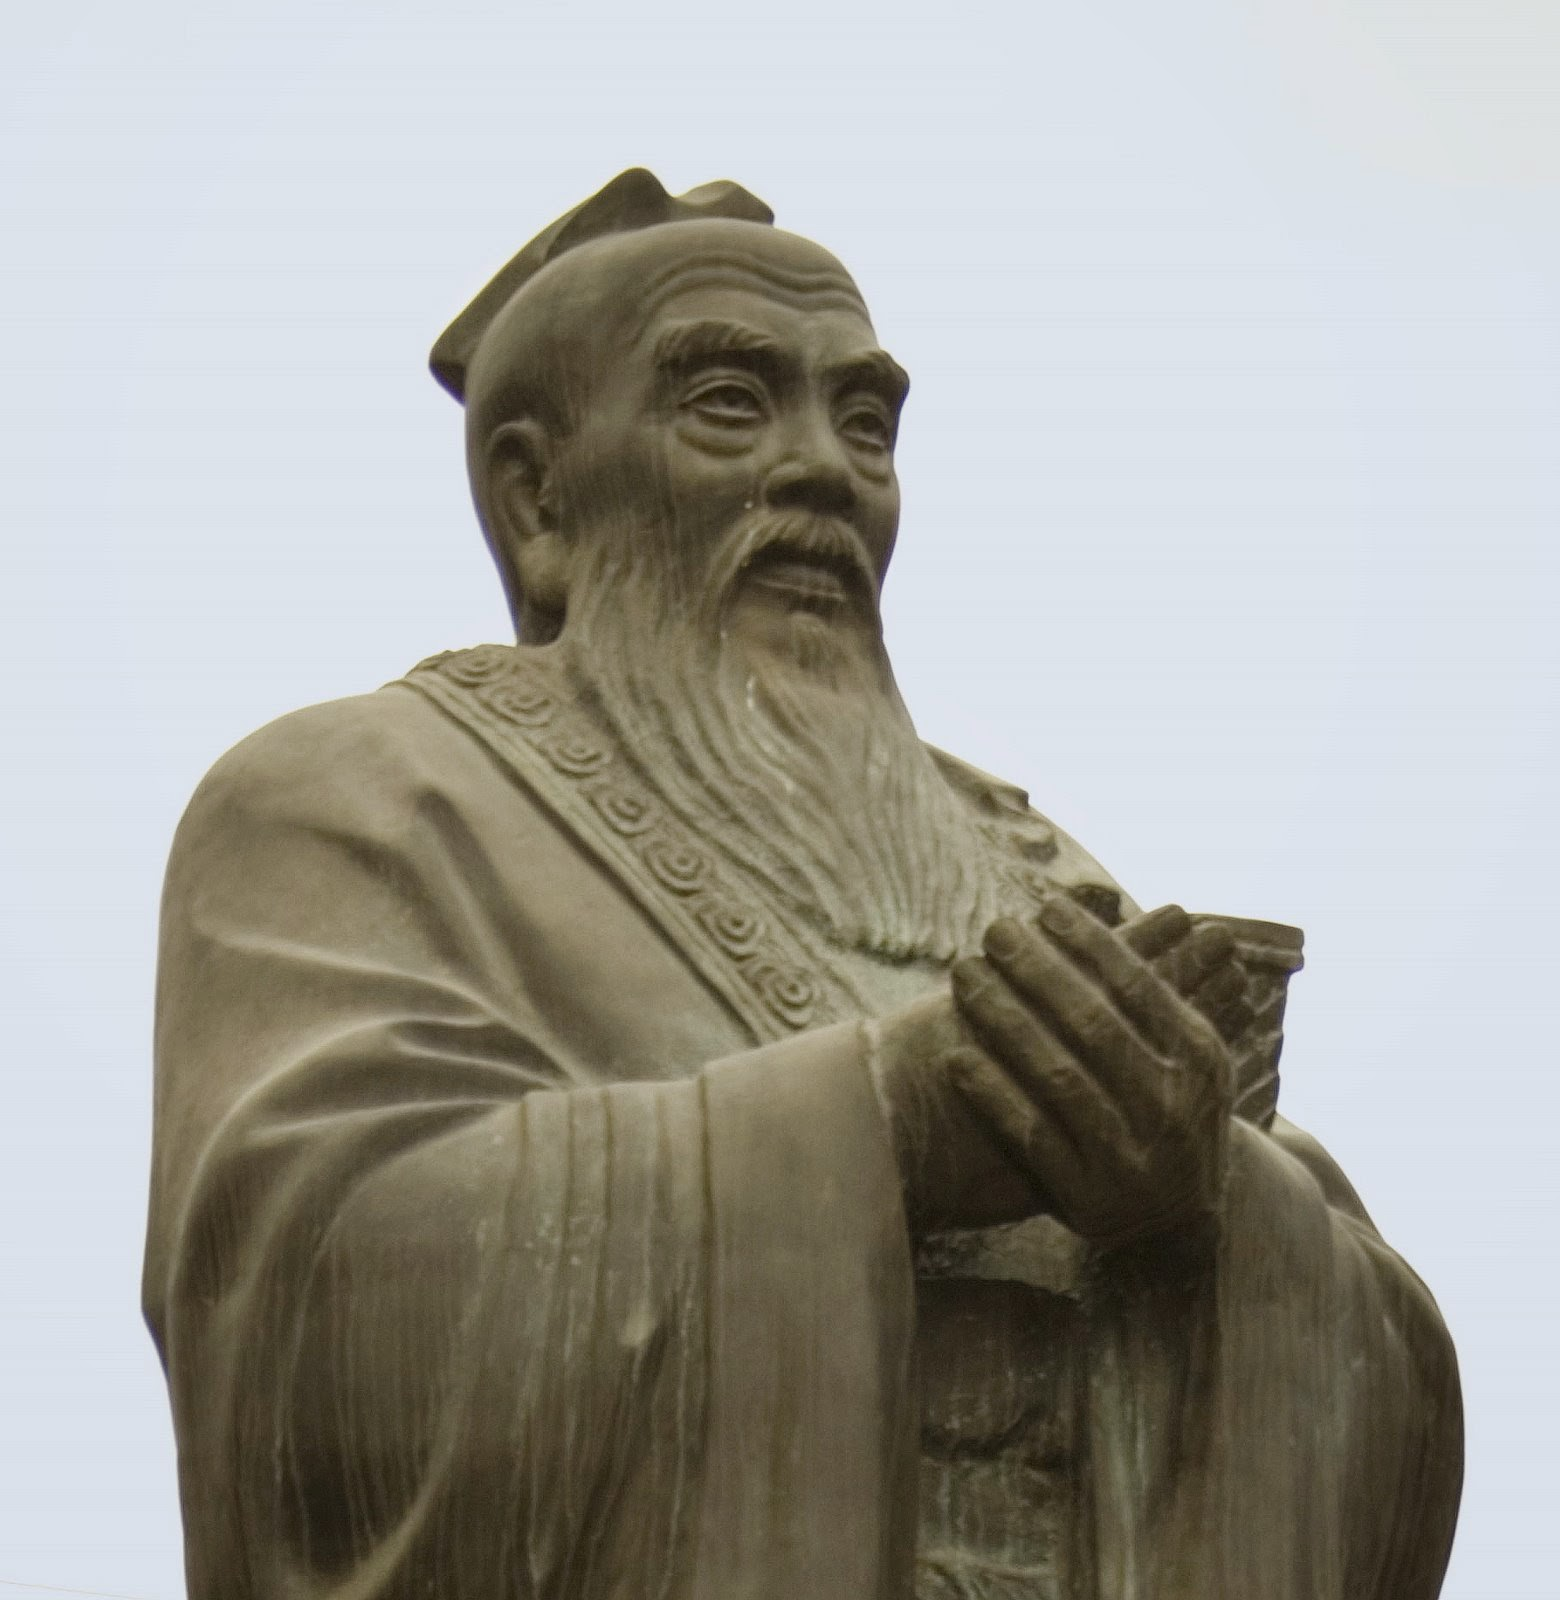 Top 14 Greatest Philosophers And Their Books - Confucius